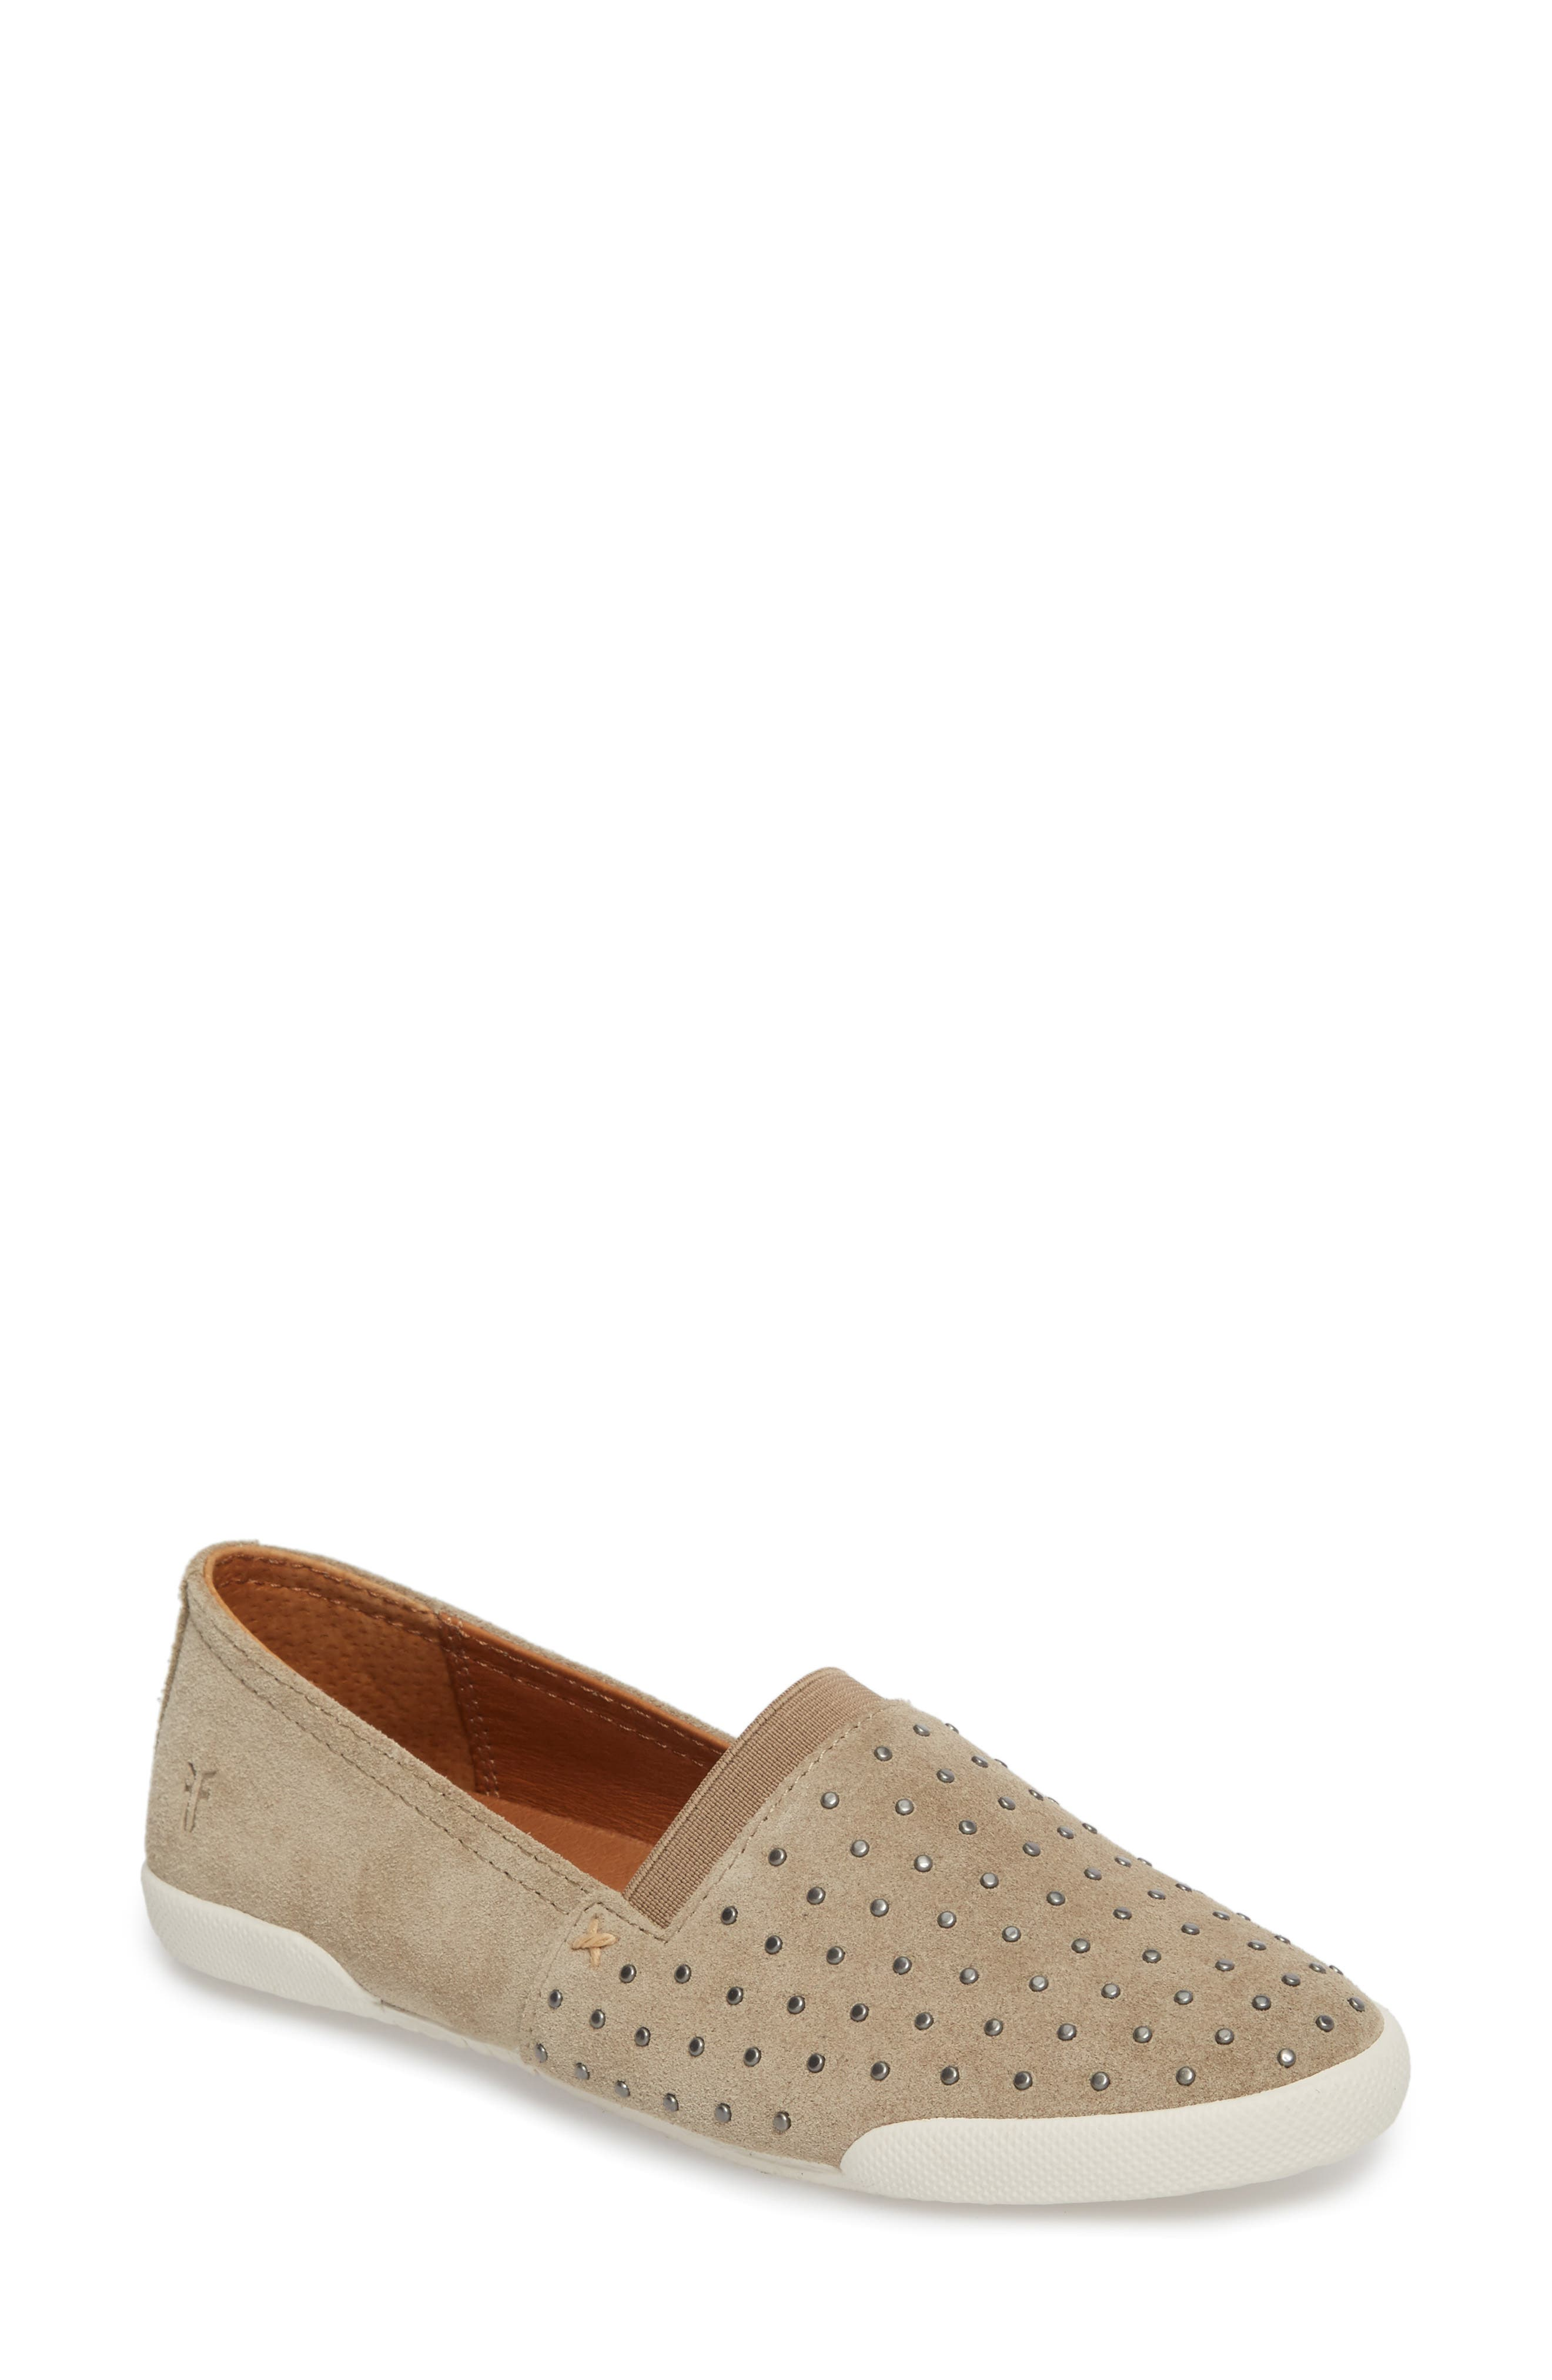 Alternate Image 1 Selected - Frye Melanie Stud Slip-On Sneaker (Women)